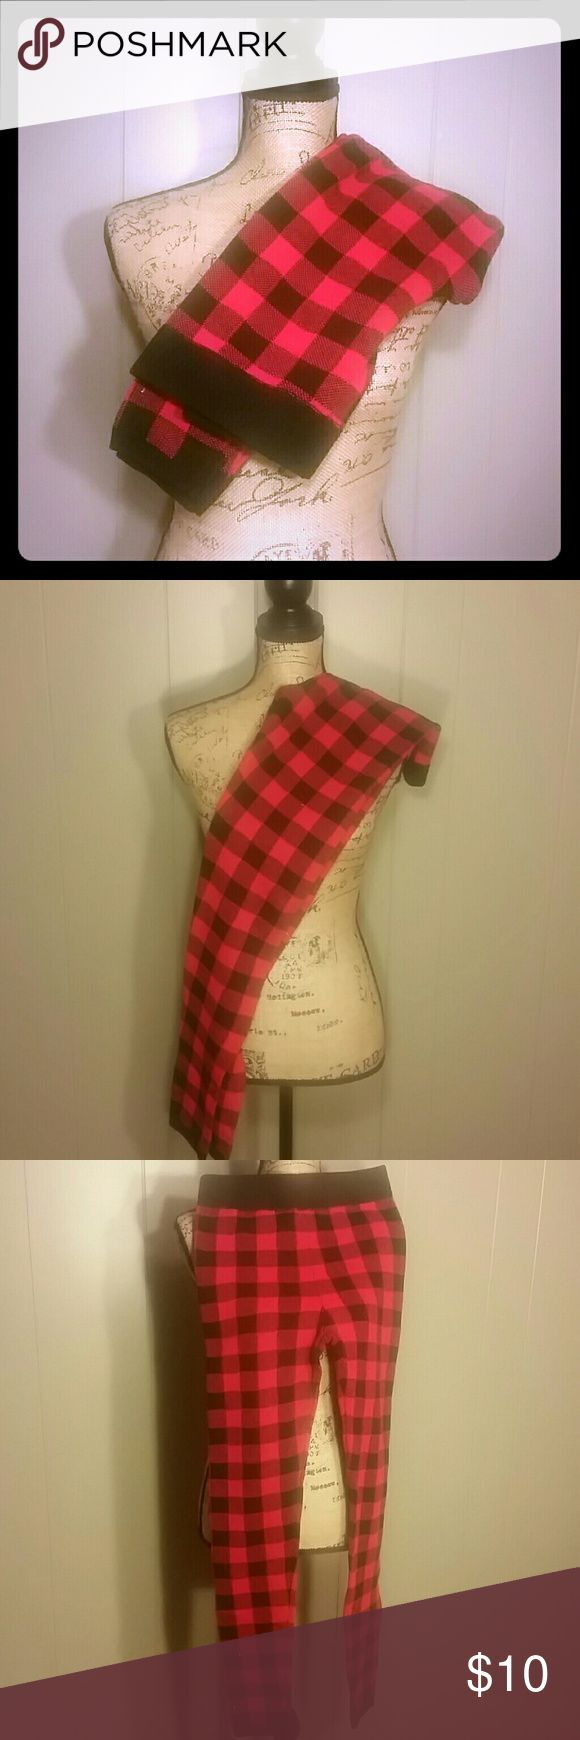 Plaid warm leggings NWOT. Super cozy perfect winter or a cold night SO Pants Leggings